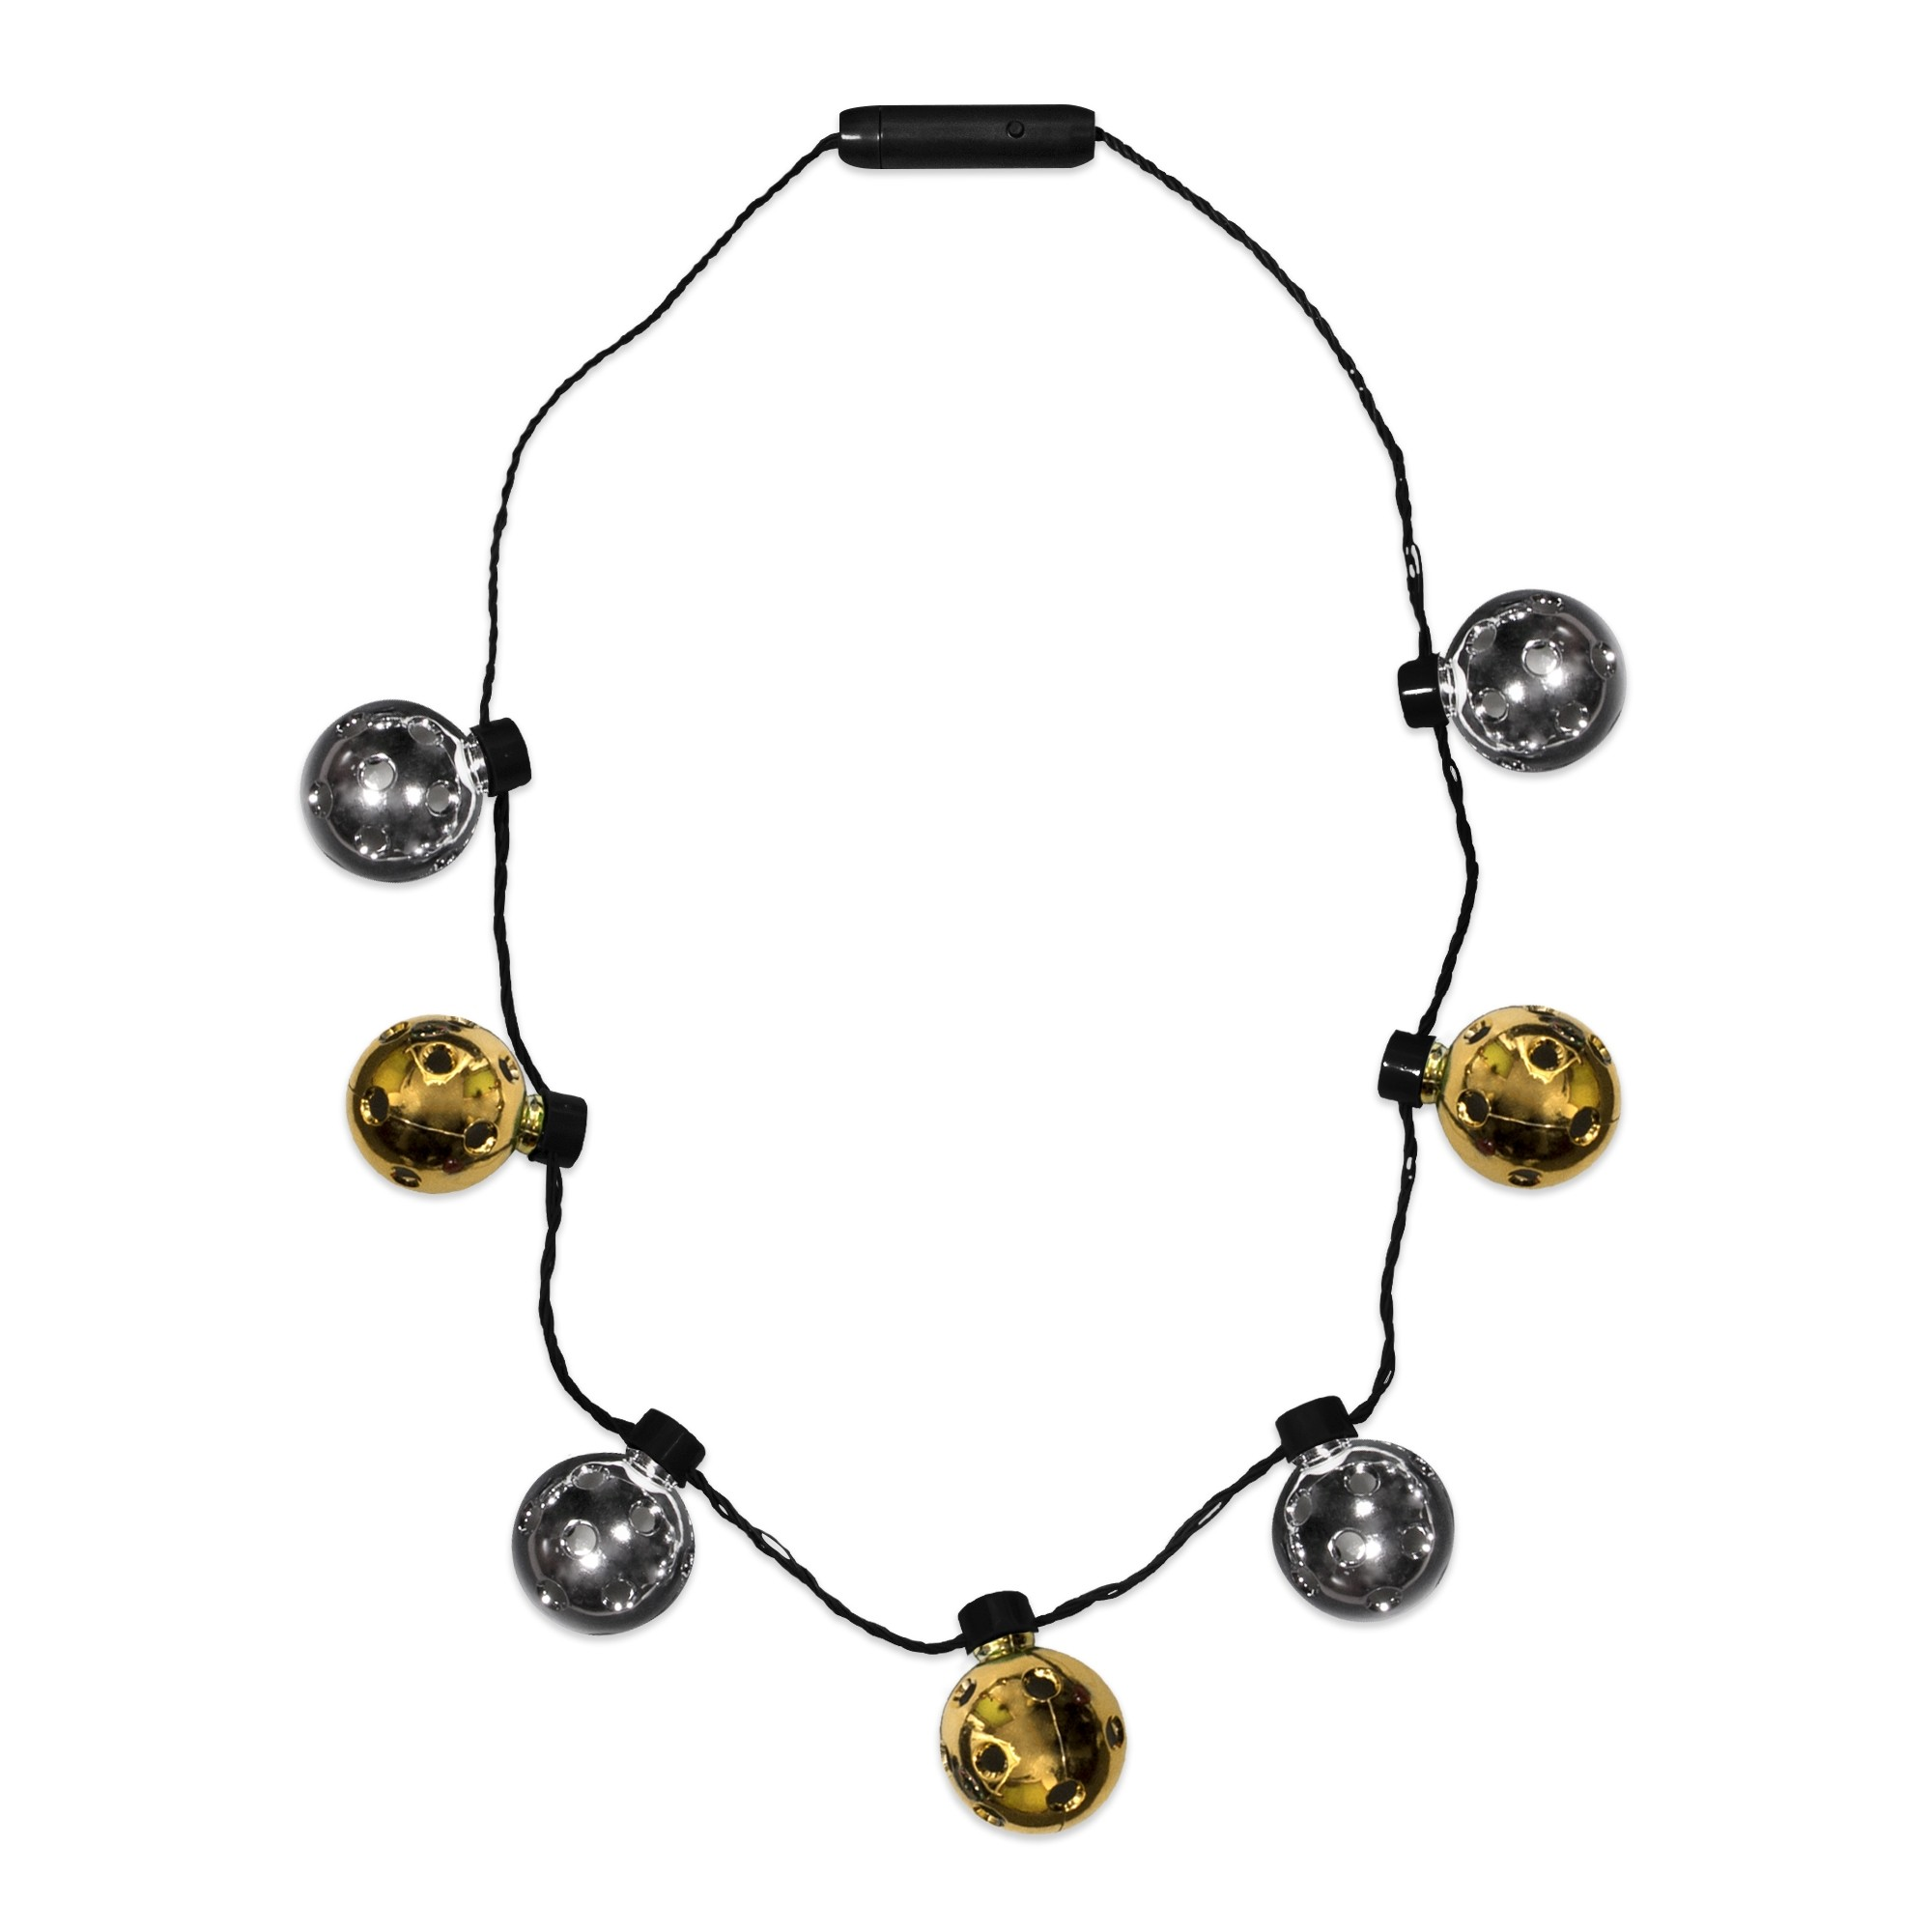 Led Gold Amp Silver Disco Ball Necklace